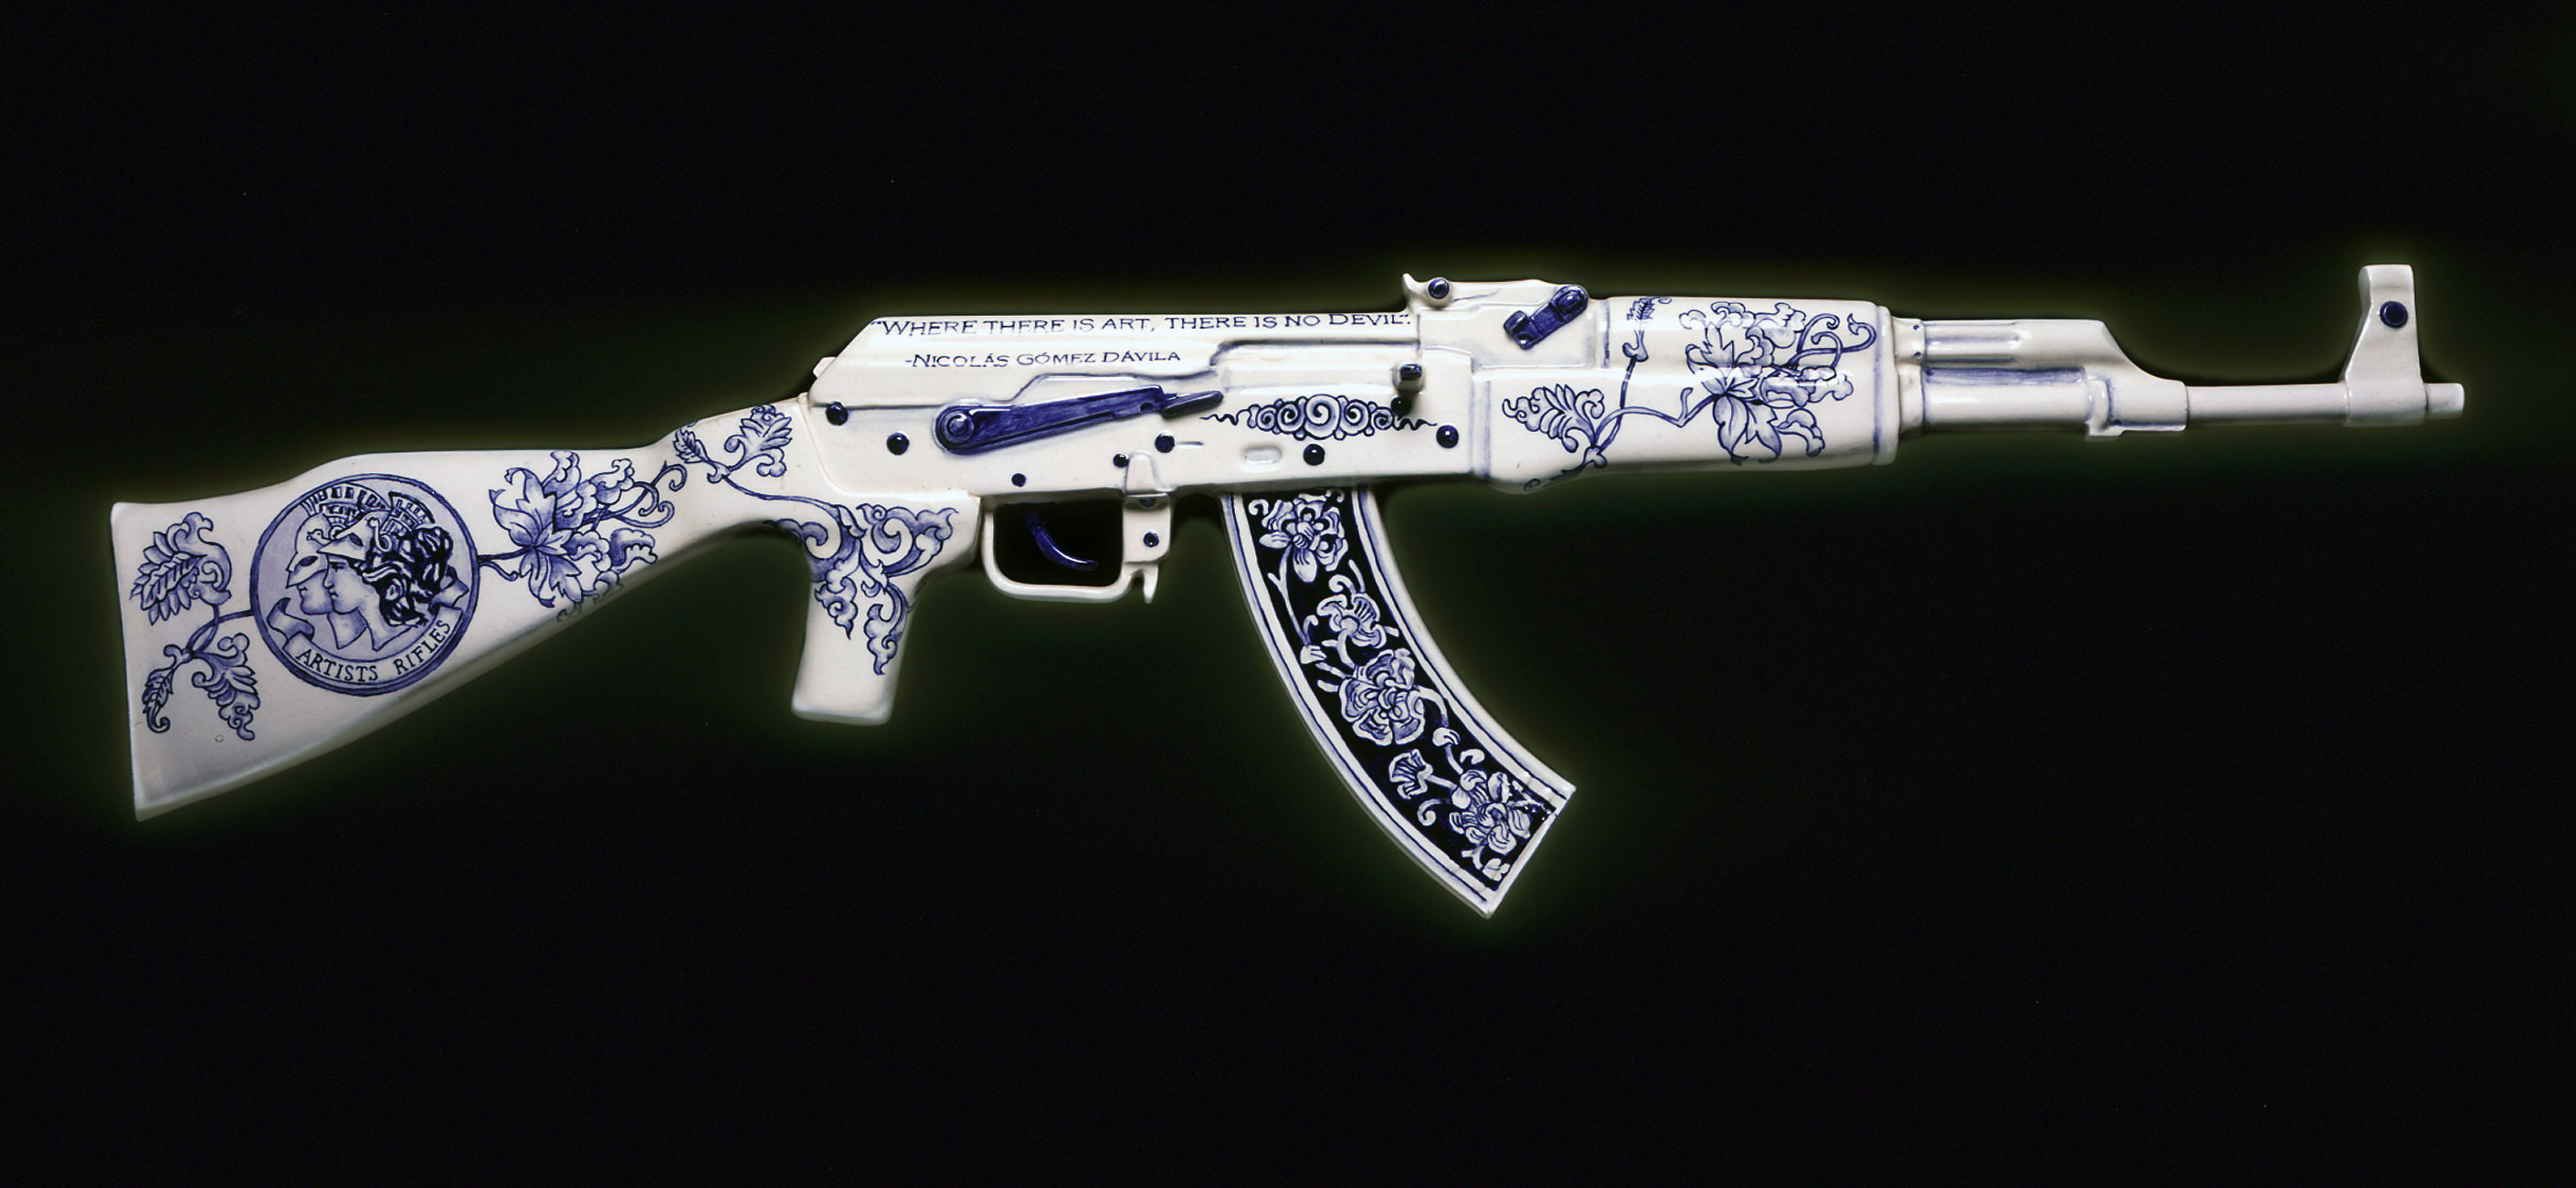 ak 47 shapes for fullscreen high definition pc or smartphones hd 2820x1301